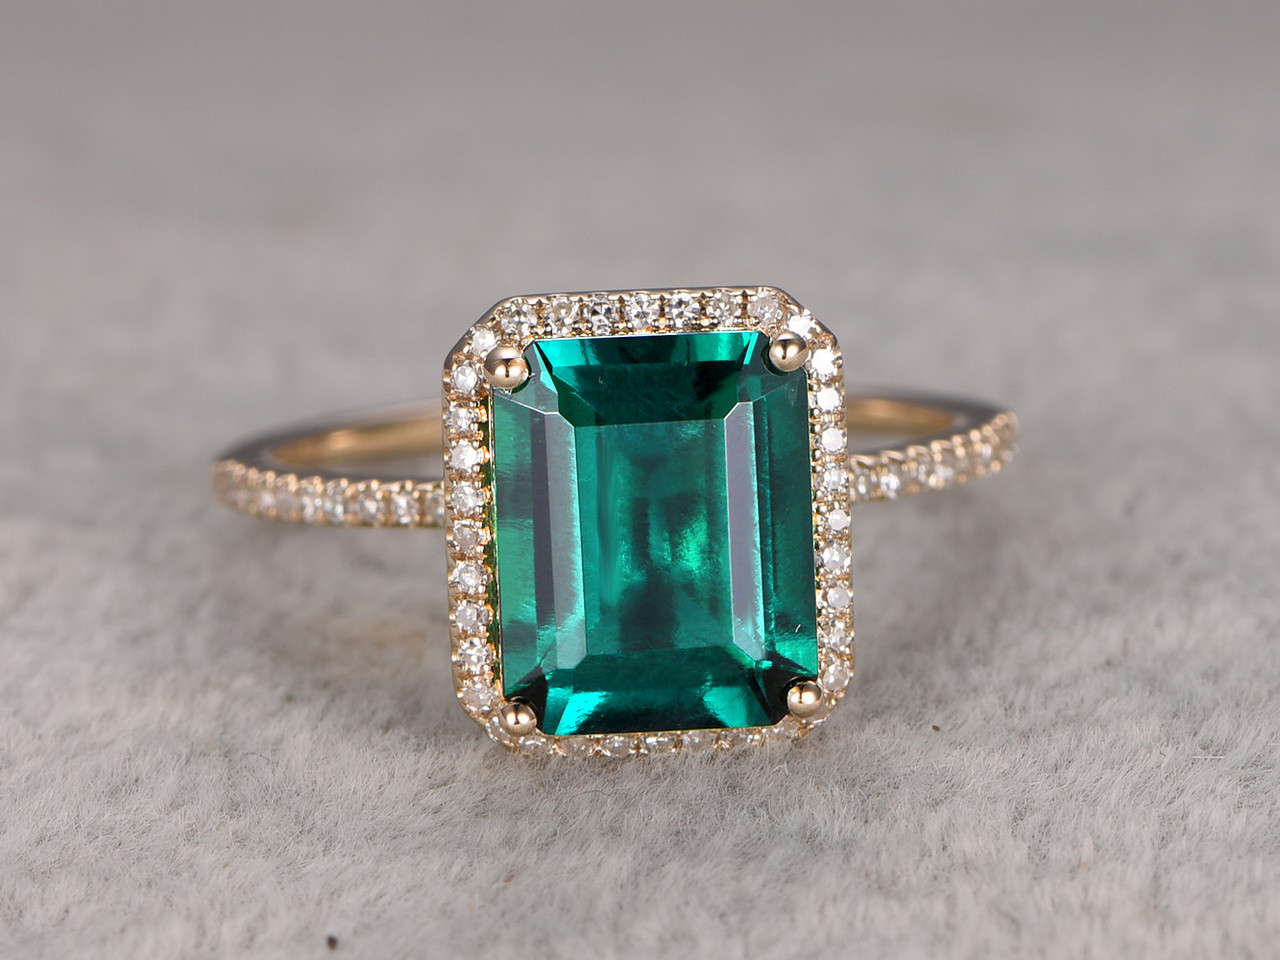 baguette deco rings cut gemstone jewellery emerald art ring diamond engagement platinum